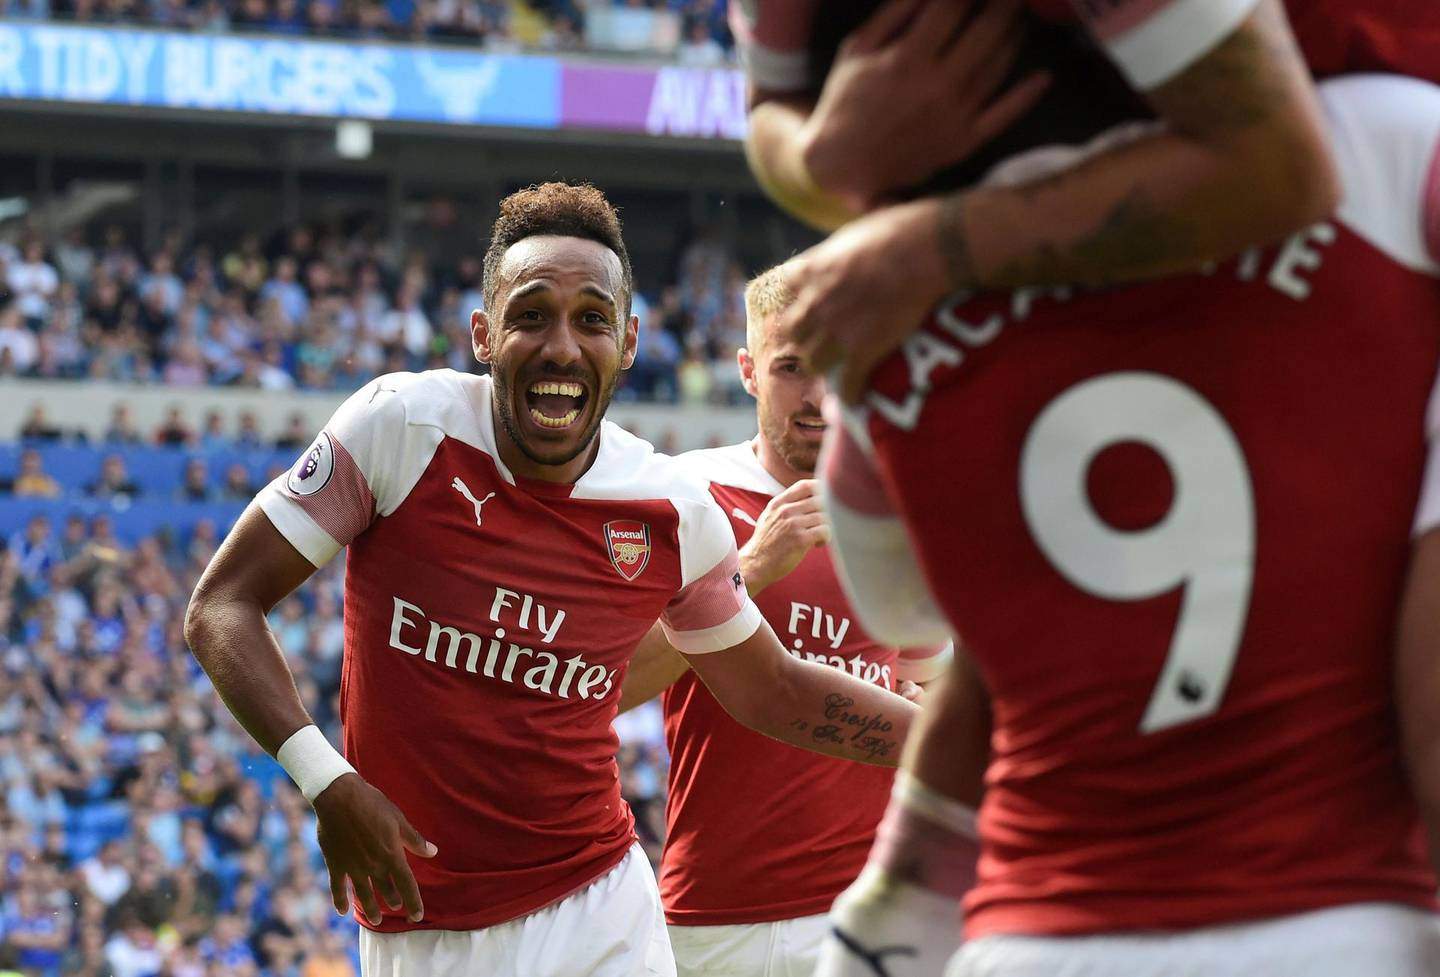 """Soccer Football - Premier League - Cardiff City v Arsenal - Cardiff City Stadium, Cardiff, Britain - September 2, 2018  Arsenal's Pierre-Emerick Aubameyang celebrates scoring their second goal              REUTERS/Rebecca Naden  EDITORIAL USE ONLY. No use with unauthorized audio, video, data, fixture lists, club/league logos or """"live"""" services. Online in-match use limited to 75 images, no video emulation. No use in betting, games or single club/league/player publications.  Please contact your account representative for further details.      TPX IMAGES OF THE DAY"""